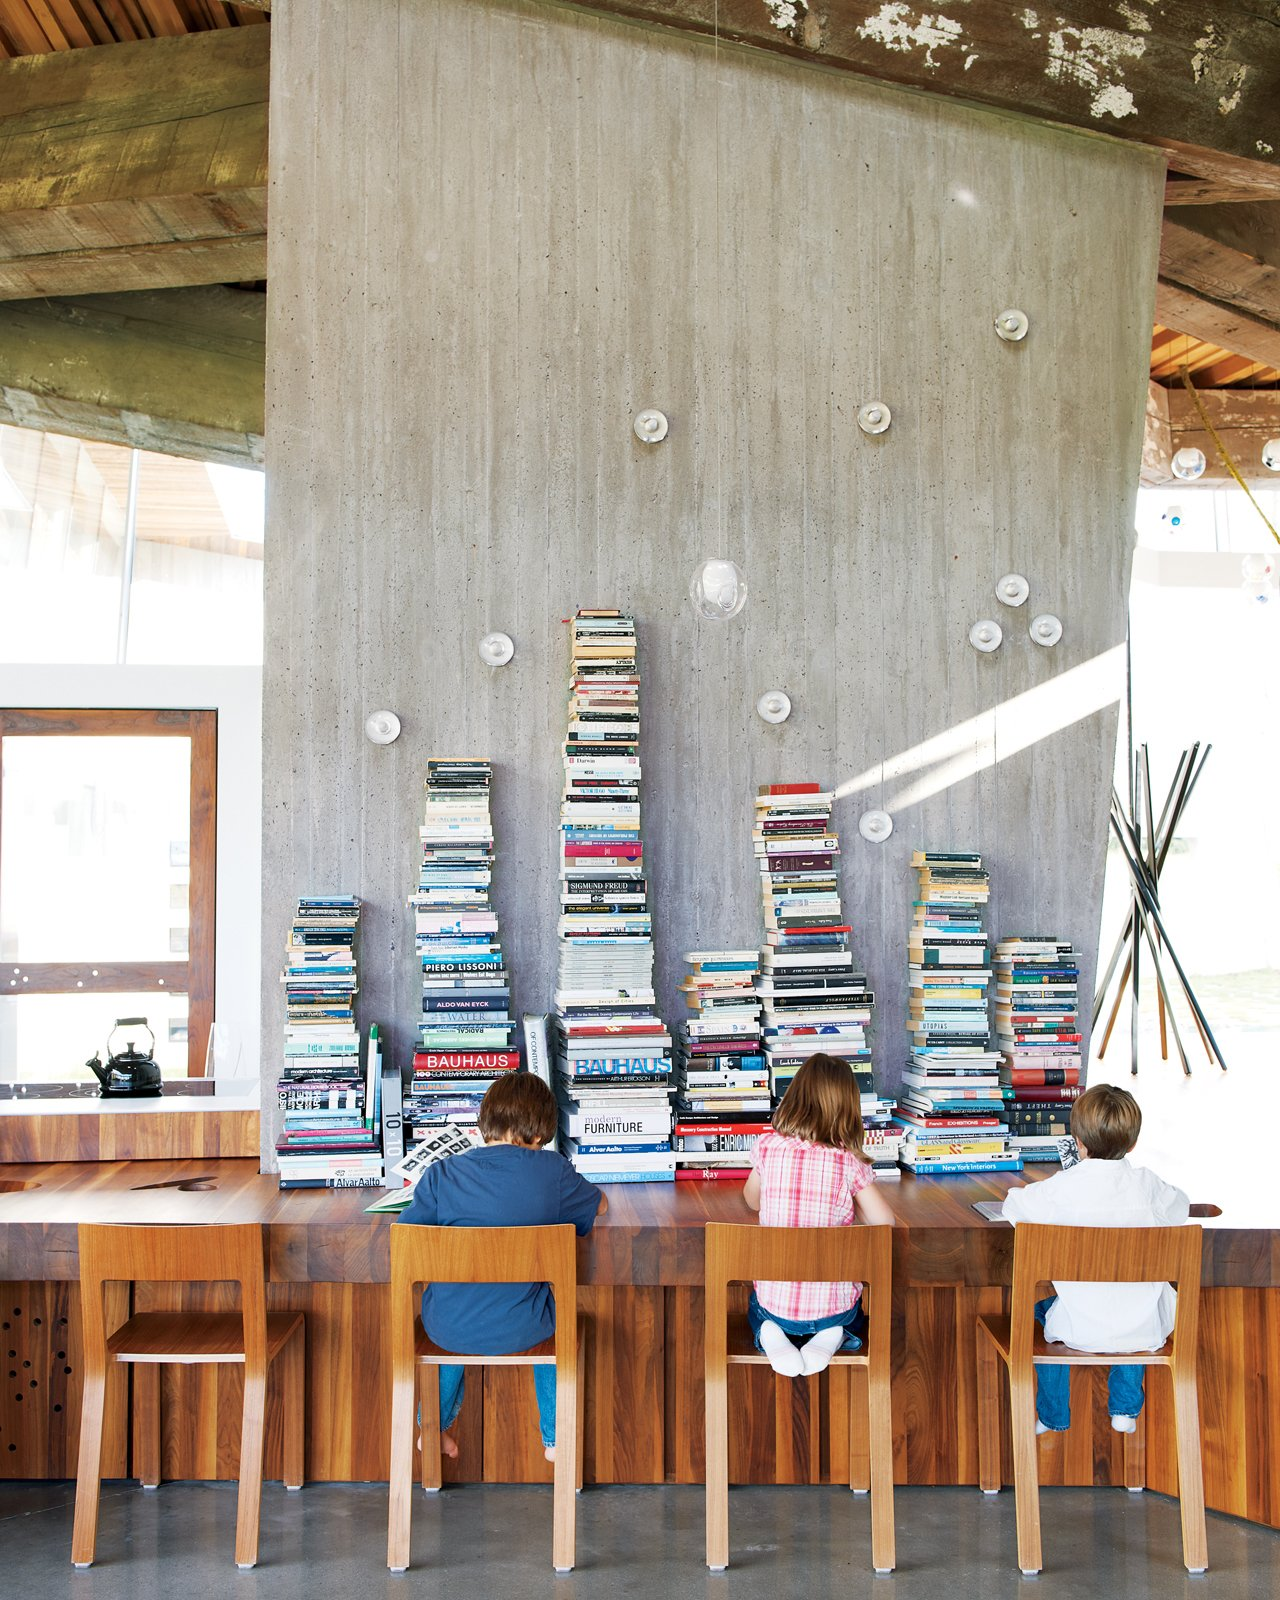 Dining Room, Table, Concrete Floor, and Chair Impromptu reading time in the open-plan kitchen is encouraged.  23.2 House by Jordan Kushins